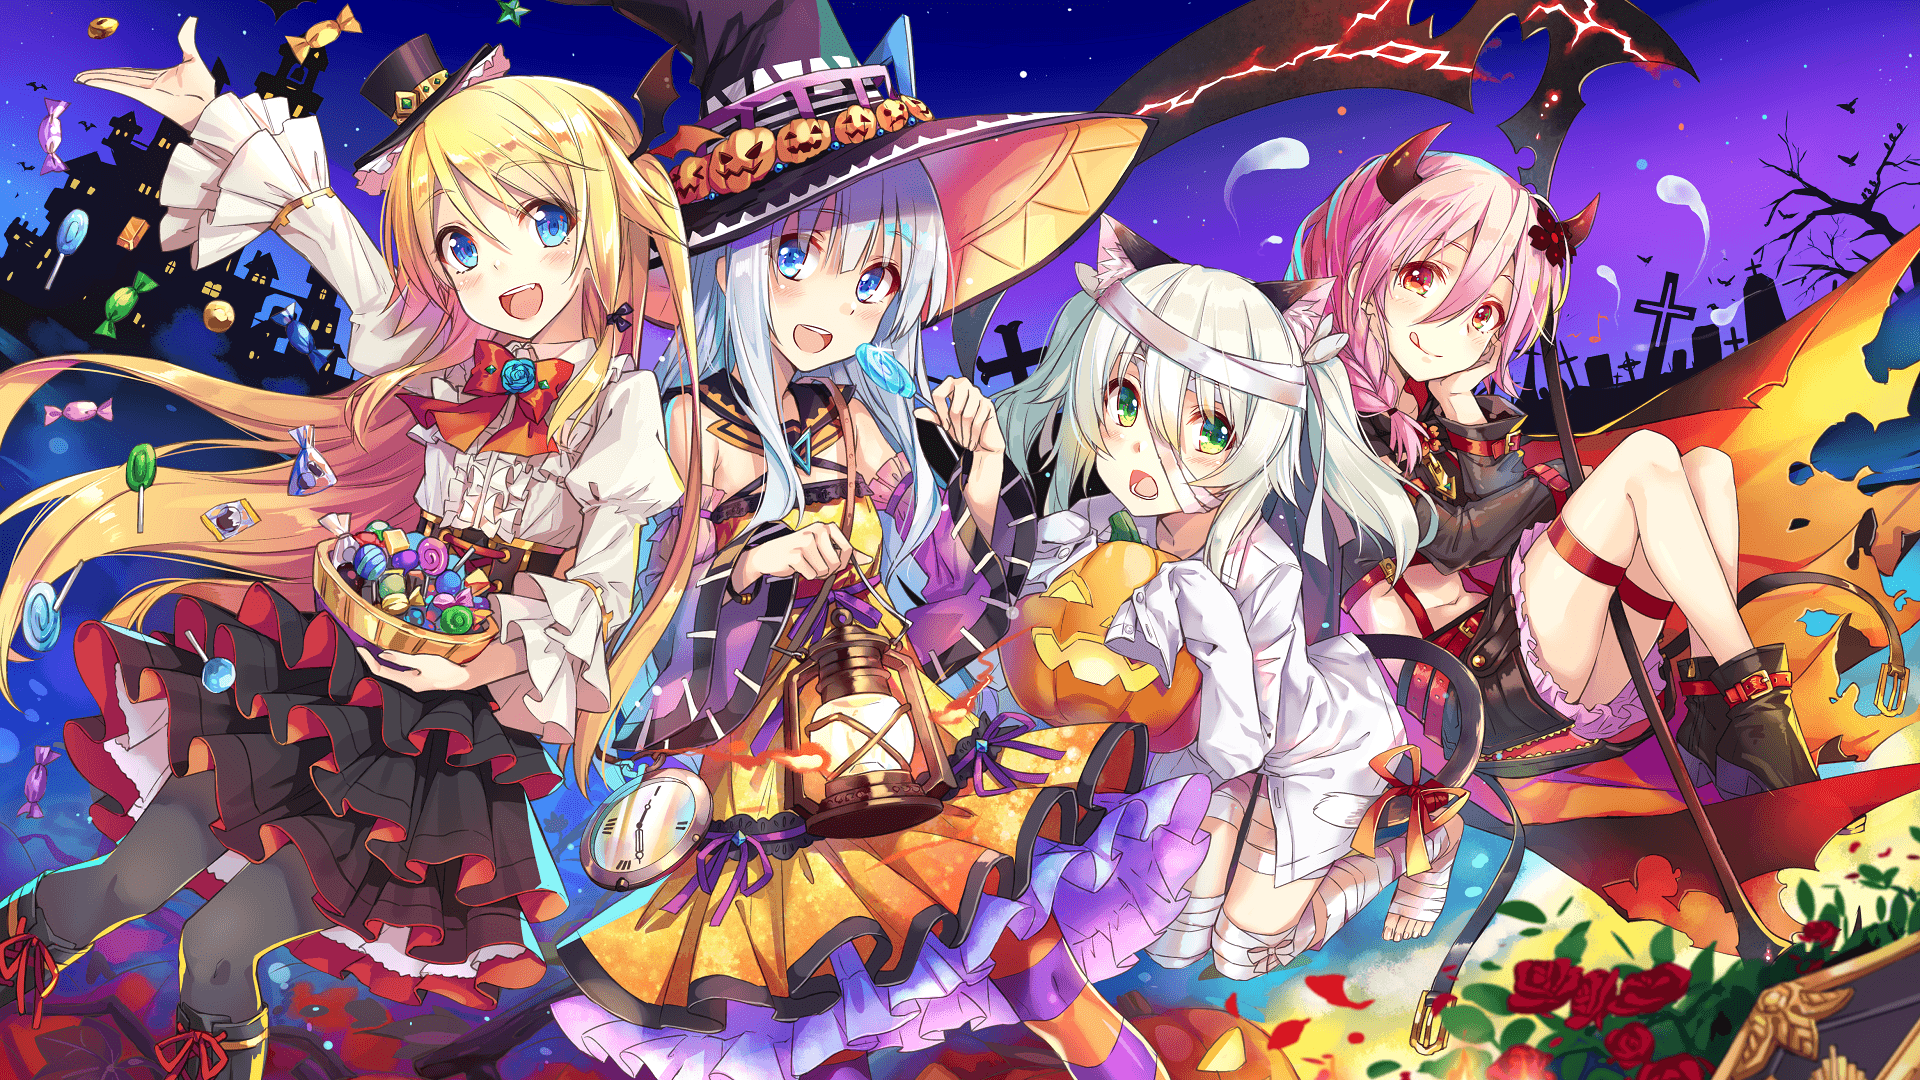 Download 1920x1080 Anime Girls, Halloween 2016, Witch